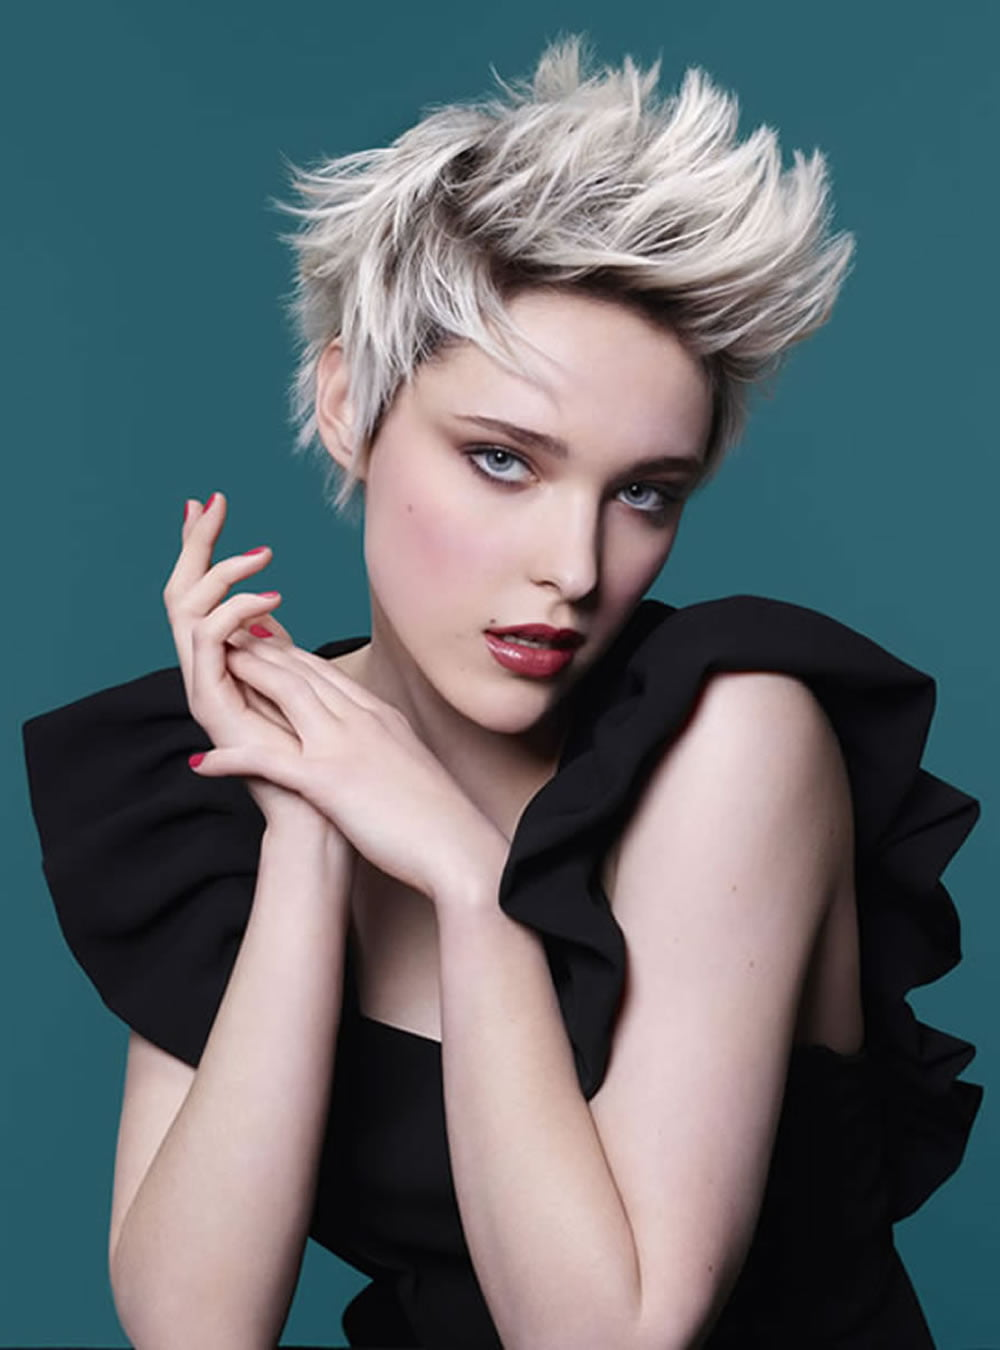 style ideas for hair 23 trend ultra hairstyle ideas amp pixie 6095